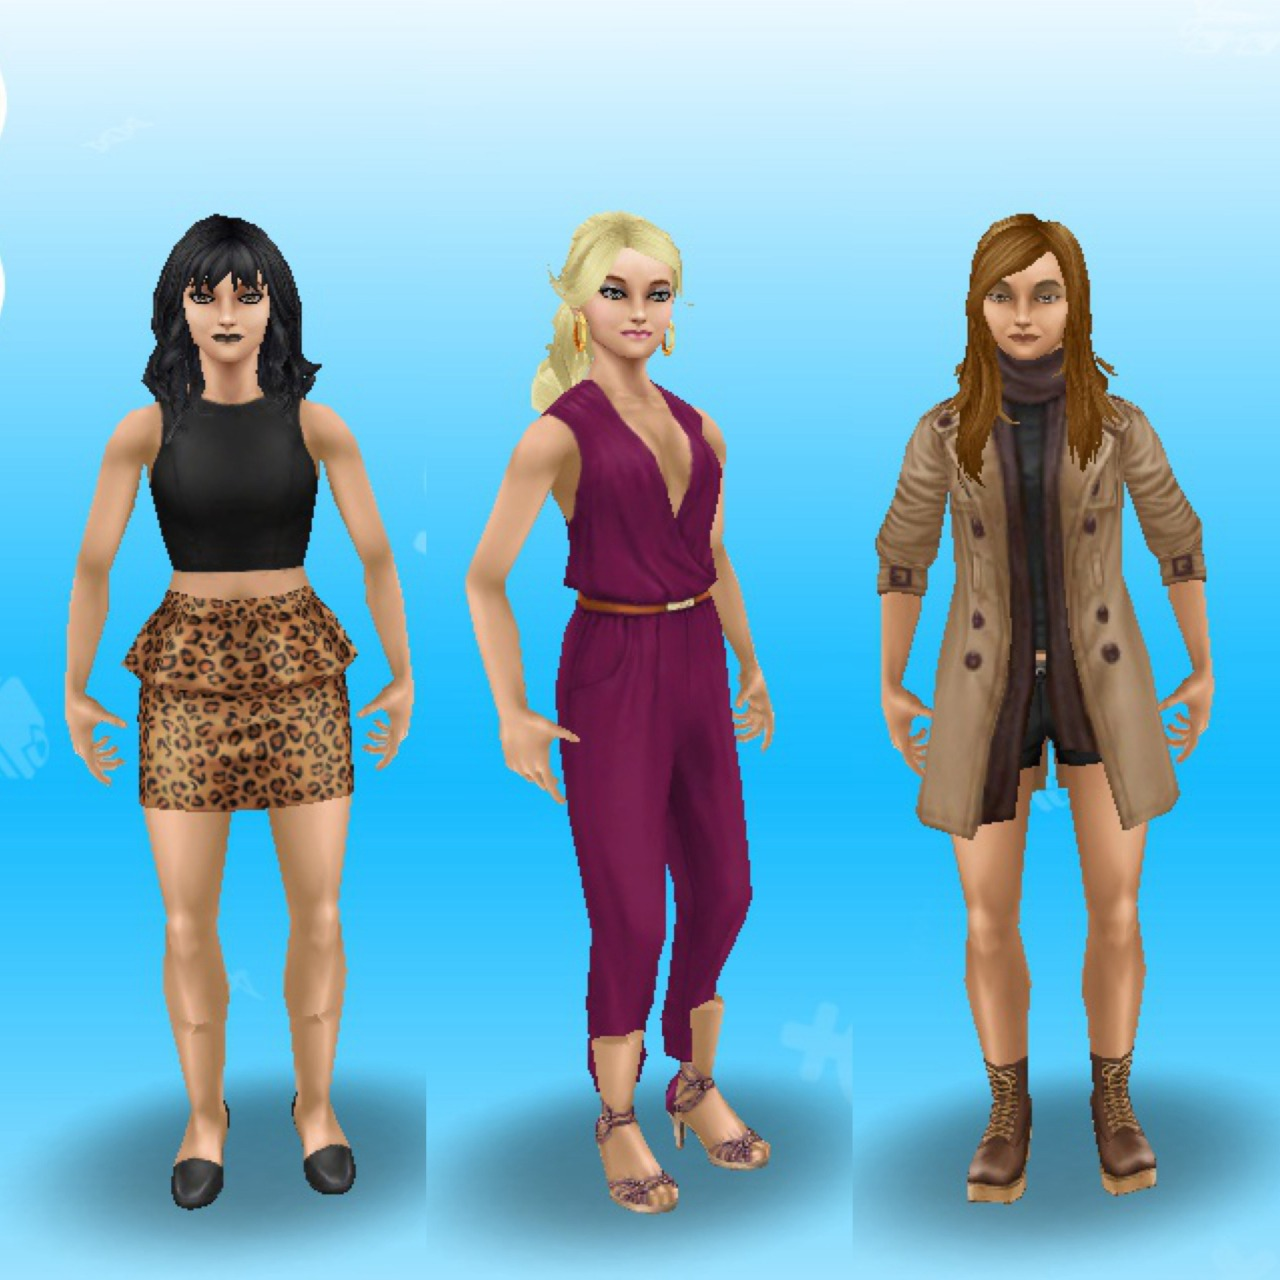 Anything Sims Freeplay Mee Natasha Beaumont Cassie Cranford And Natalie